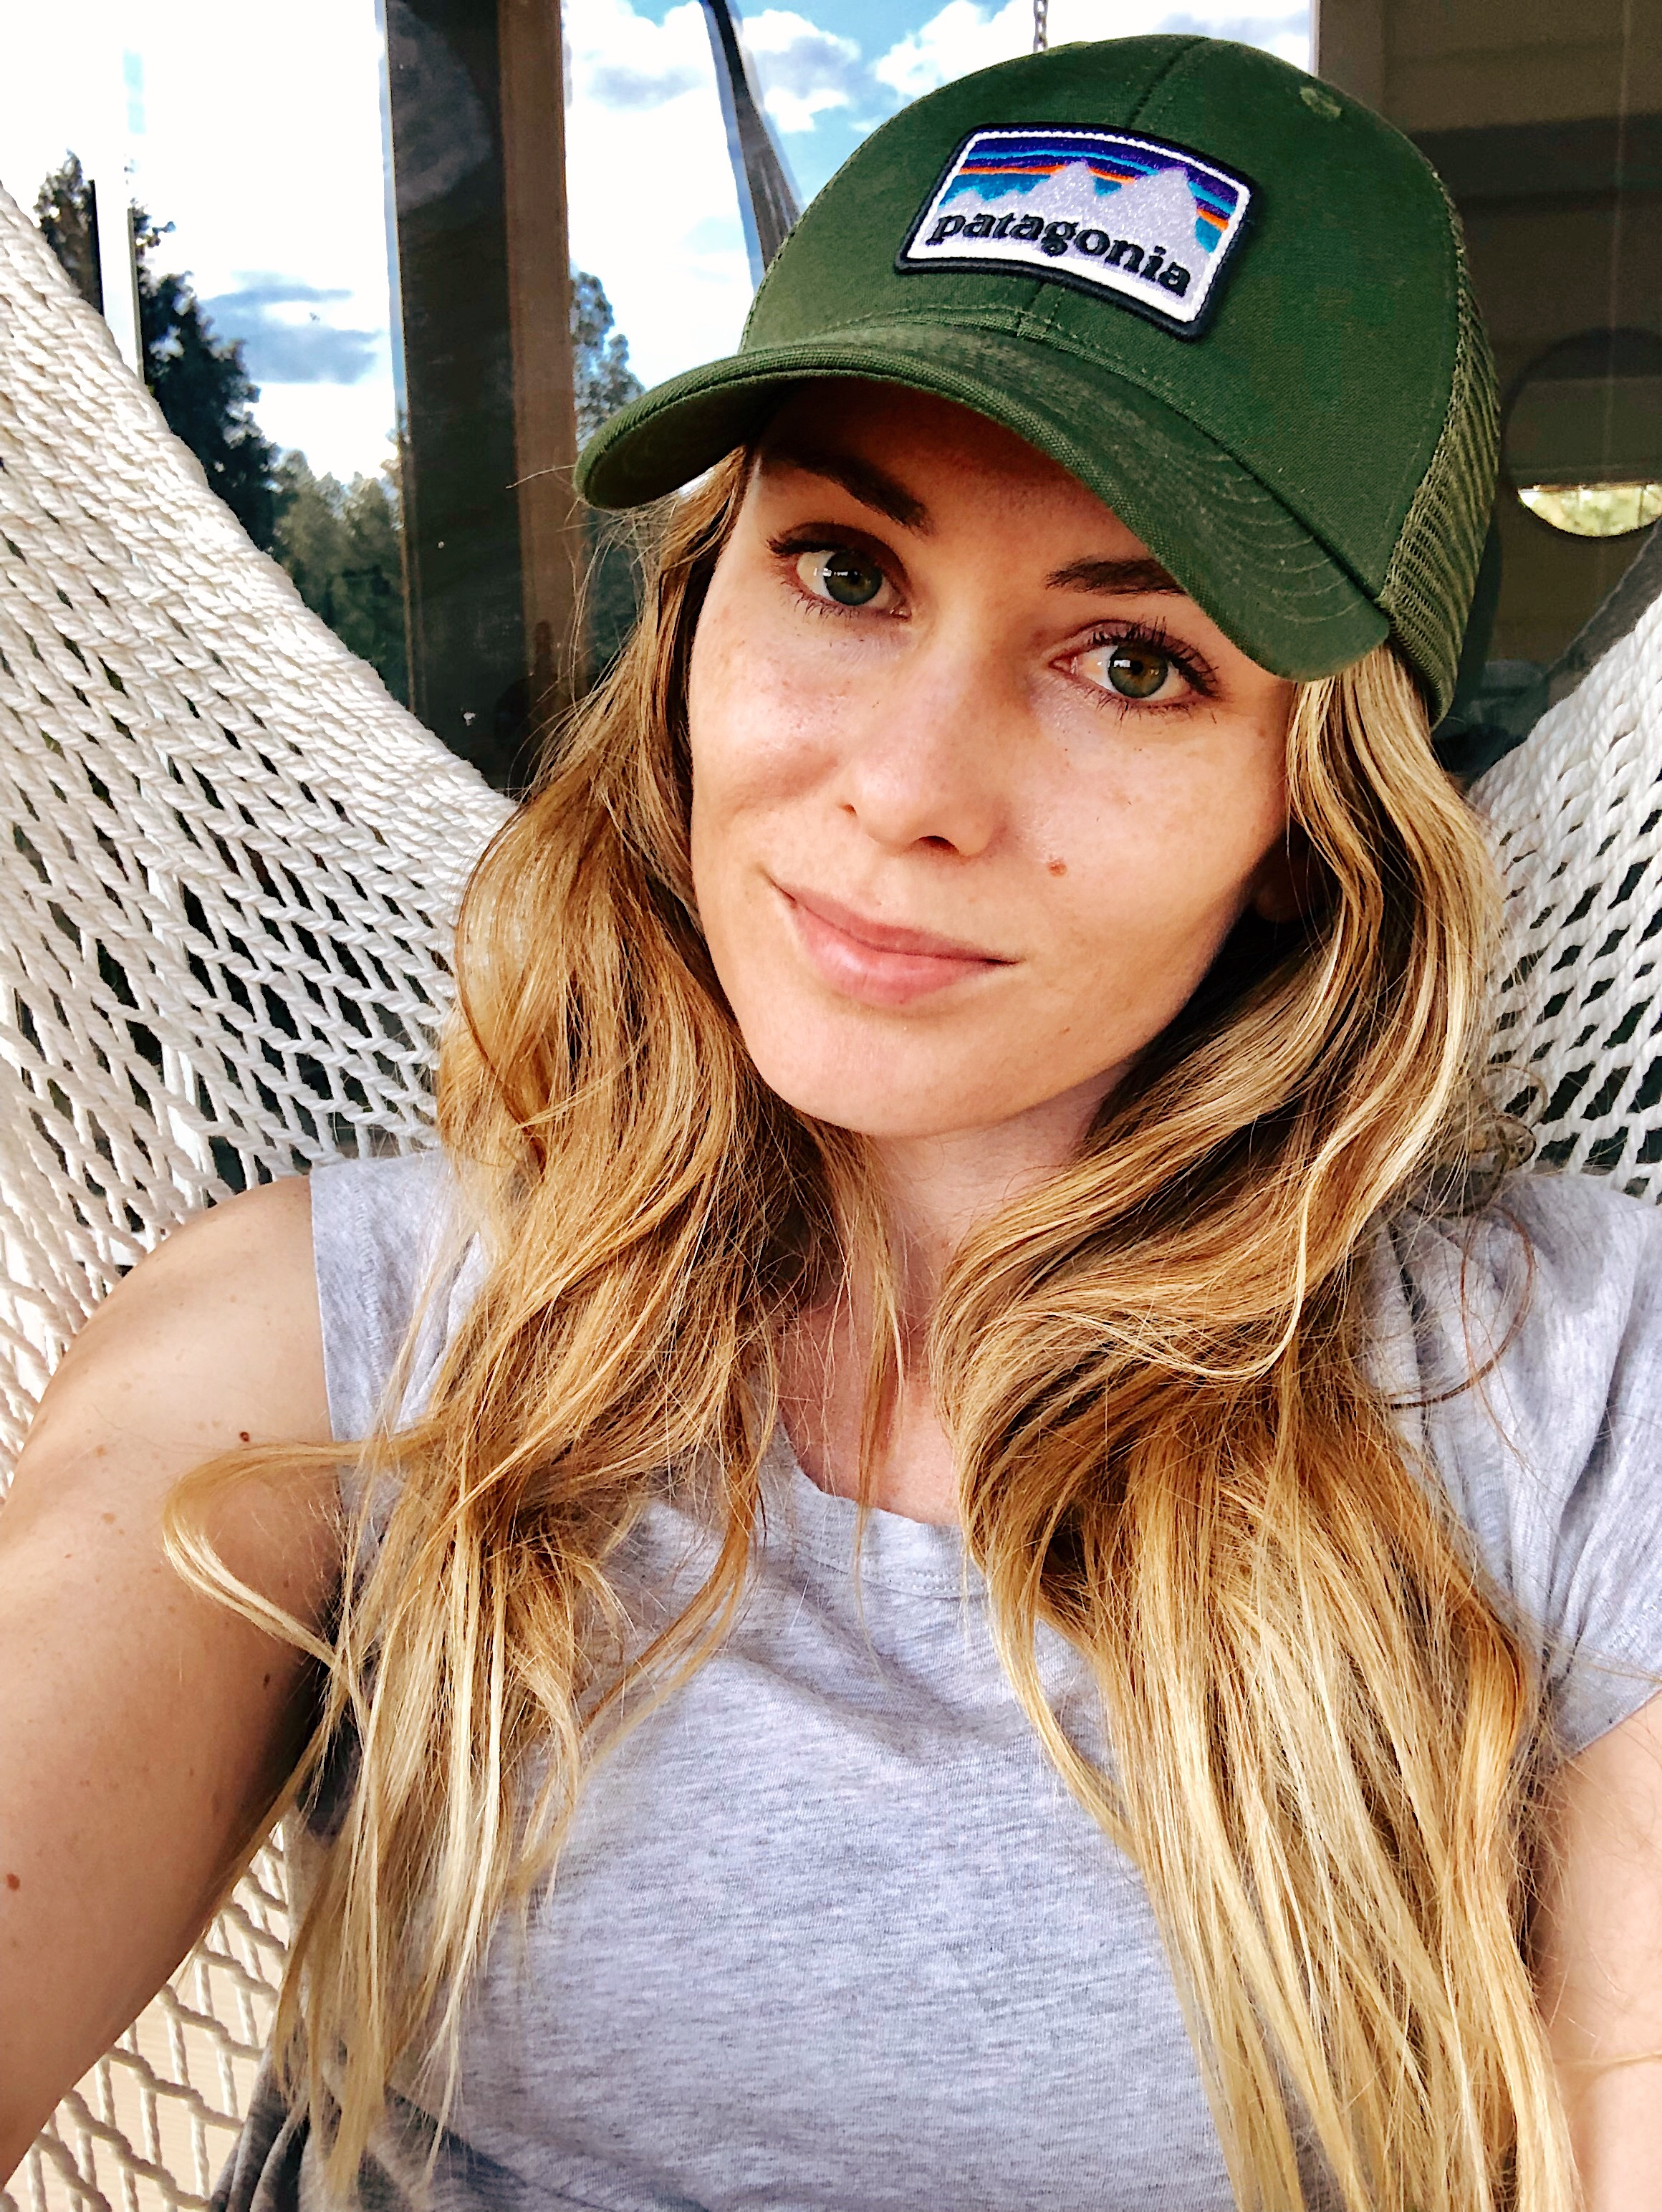 A portrait of me, Juliana Linder. I'm wearing a green Patagonia hat, a grey shirt, looking directly into the camera with a closed smile.